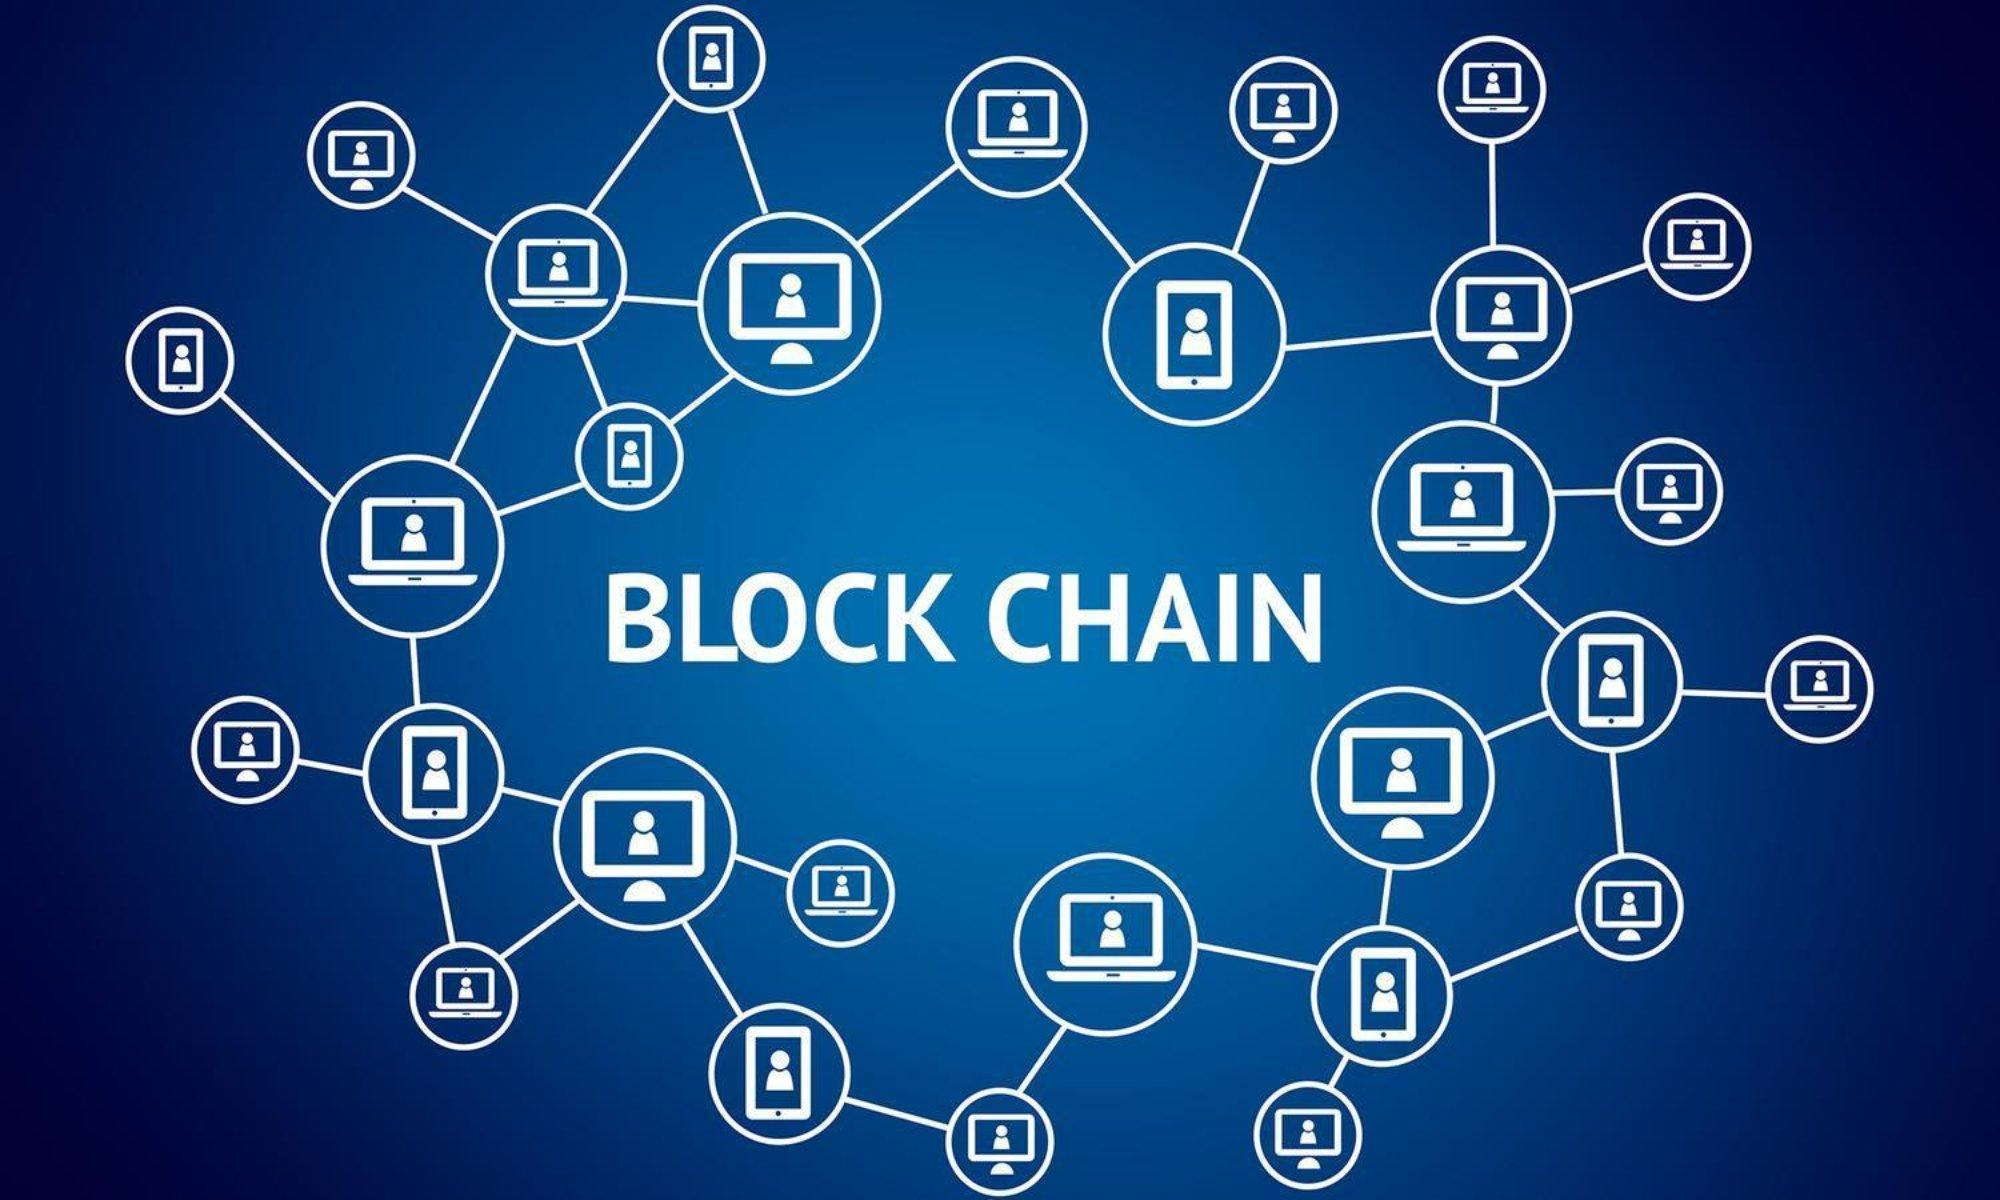 Basel Blockchain Bootcamp [Mar 12-April 5, 2018] | Blockchain Training | Bitcoin Training | IT | Training | Ethereum | Solidity | Hyperledger | Distributed Ledger | Smart Contracts | Cryptocurrency | ICO Offerings | Weekday Evenings